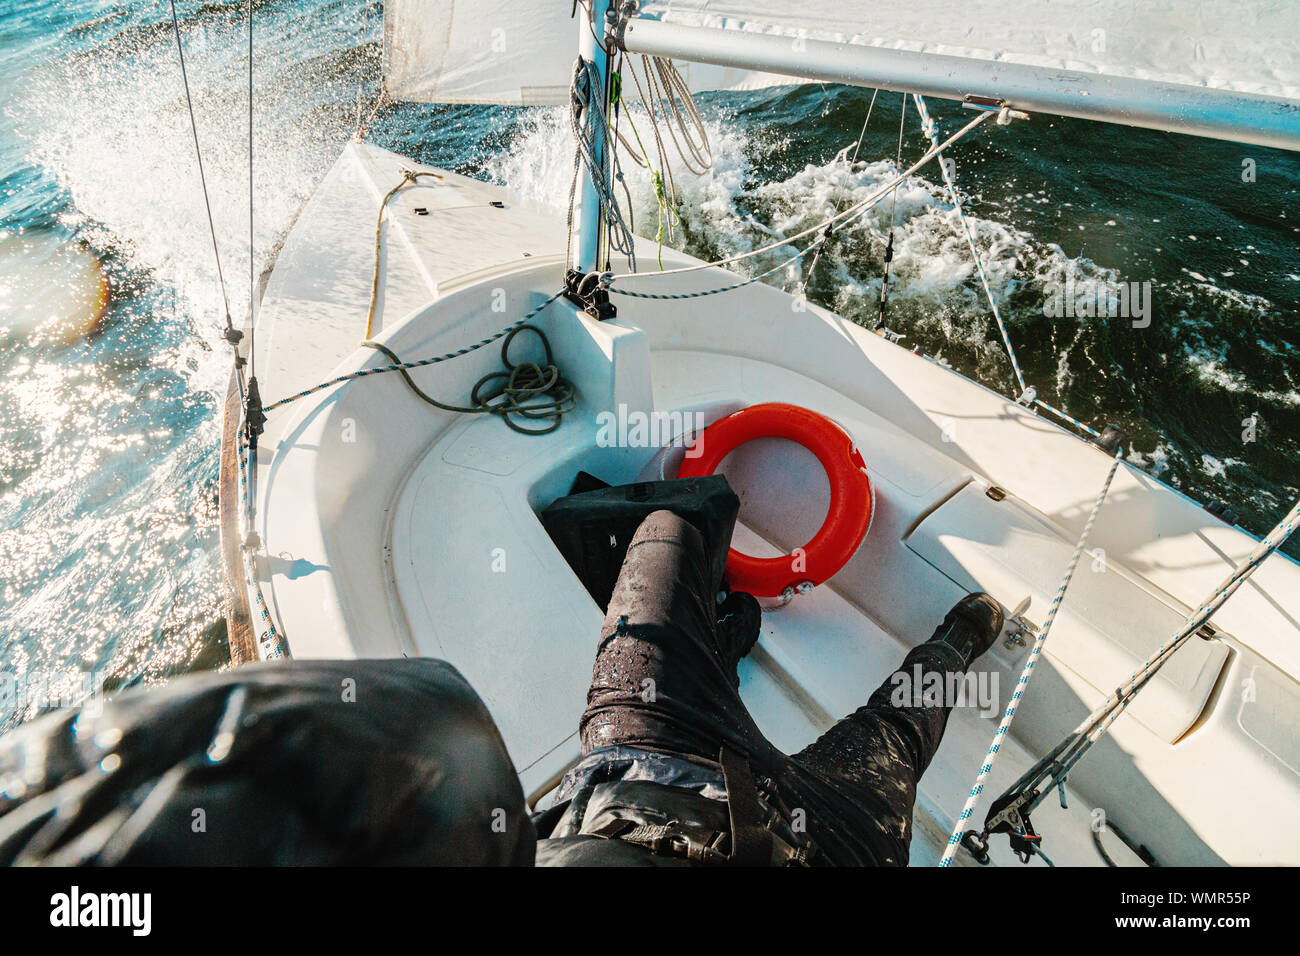 Waves spraying on the deck of a small yawl during a windy trip on the ocean Stock Photo